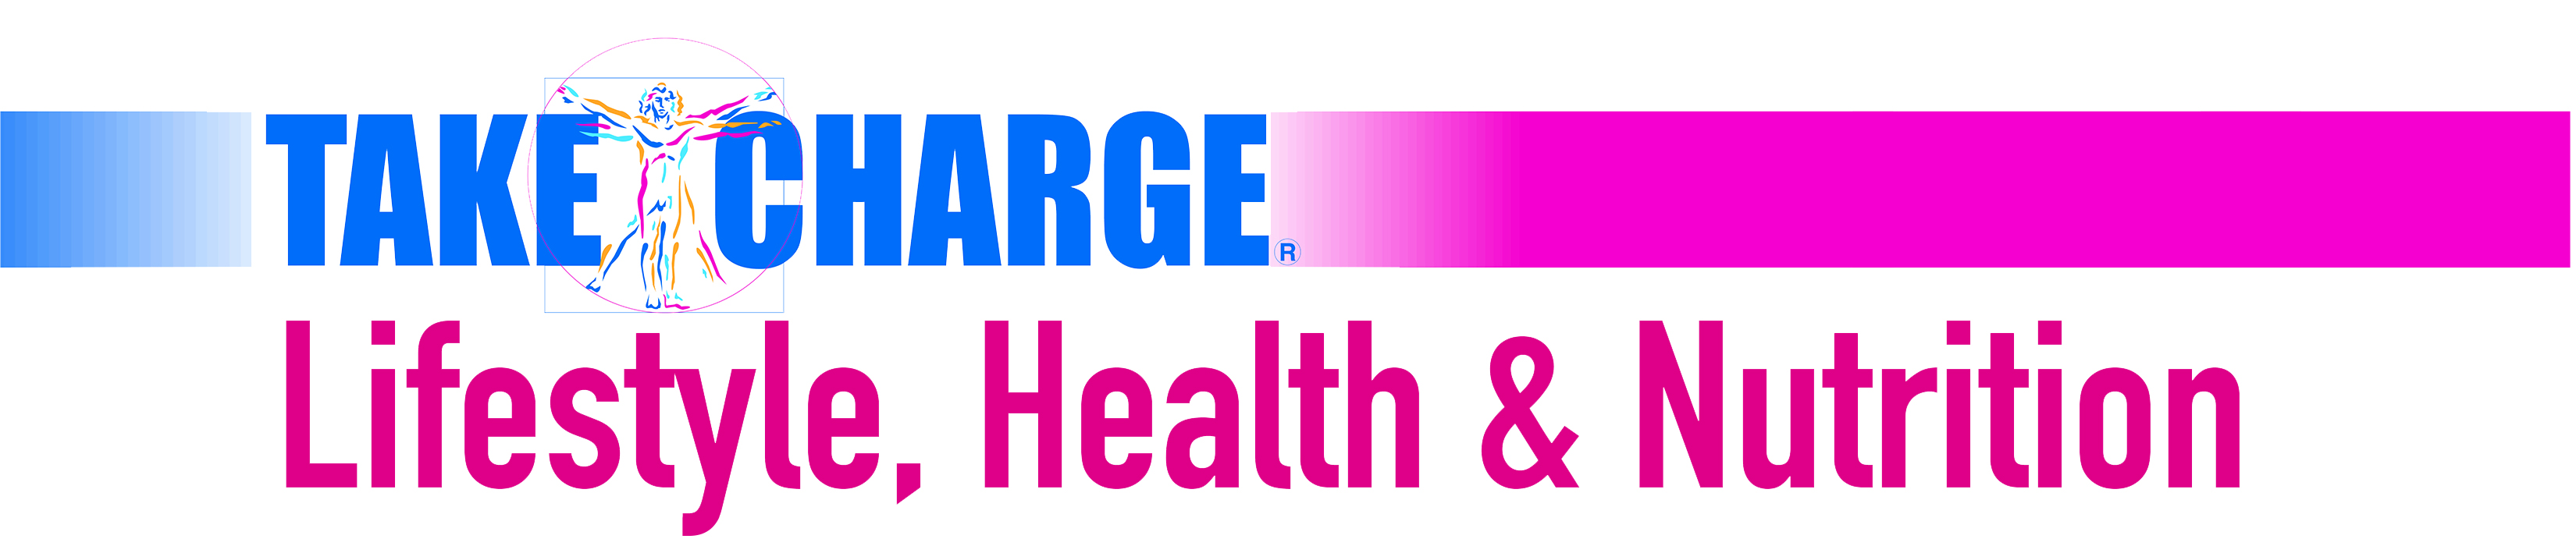 TakeCharge Lifestyle Health Nutrition Hi.jpg